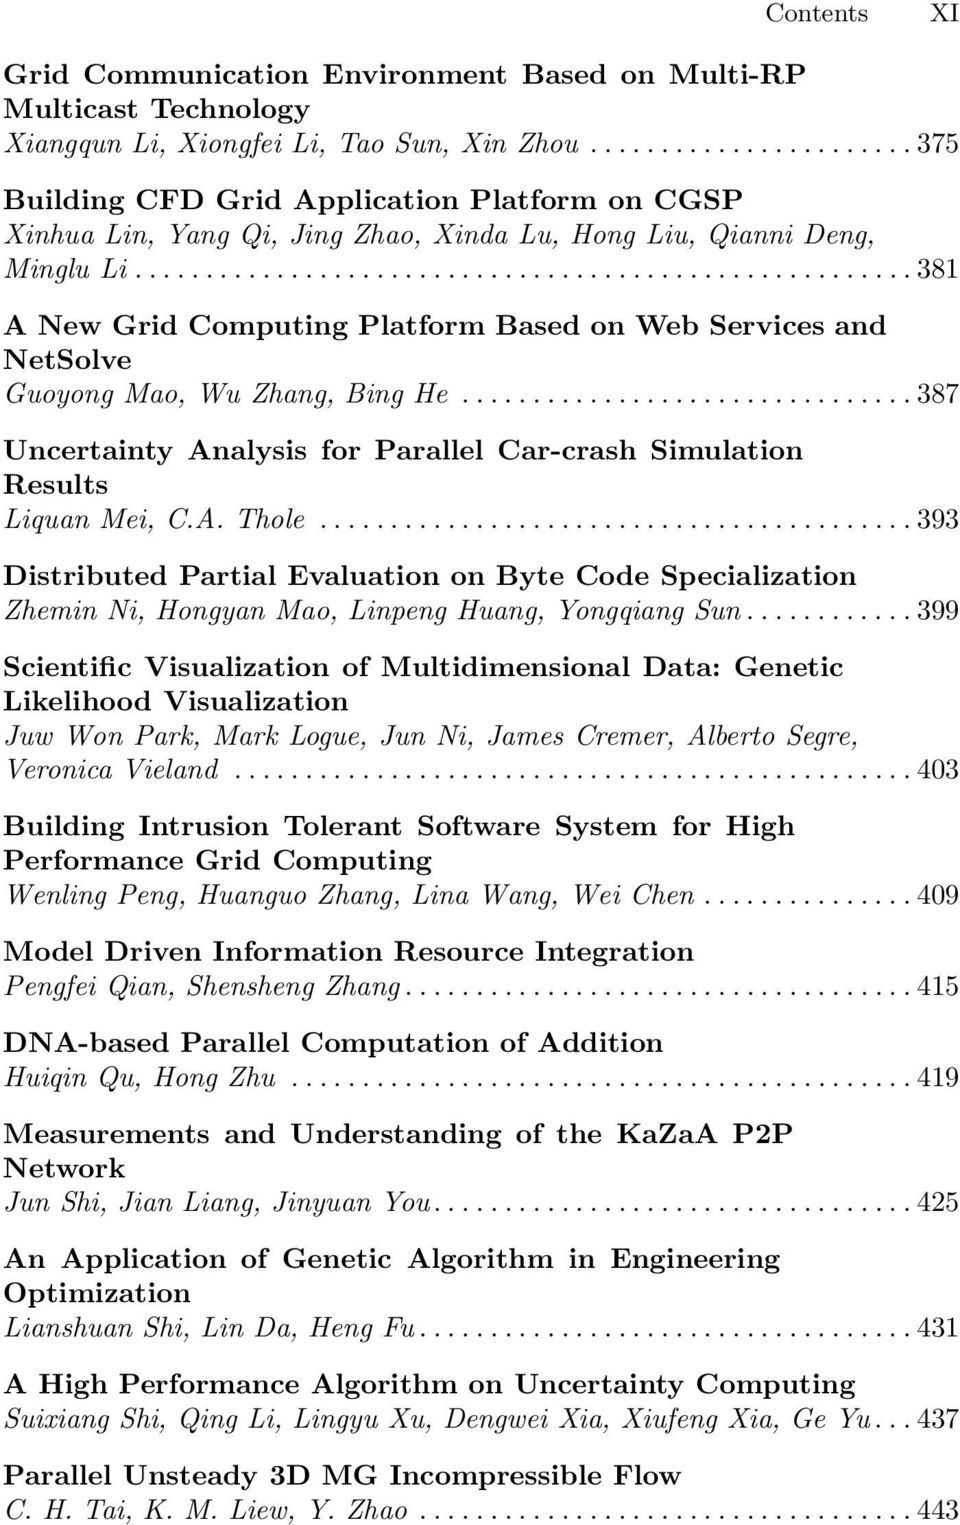 ..381 A New Grid Computing Platform Based on Web Services and NetSolve Guoyong Mao, Wu Zhang, Bing He...387 Uncertainty Analysis for Parallel Car-crash Simulation Results Liquan Mei, C.A. Thole.